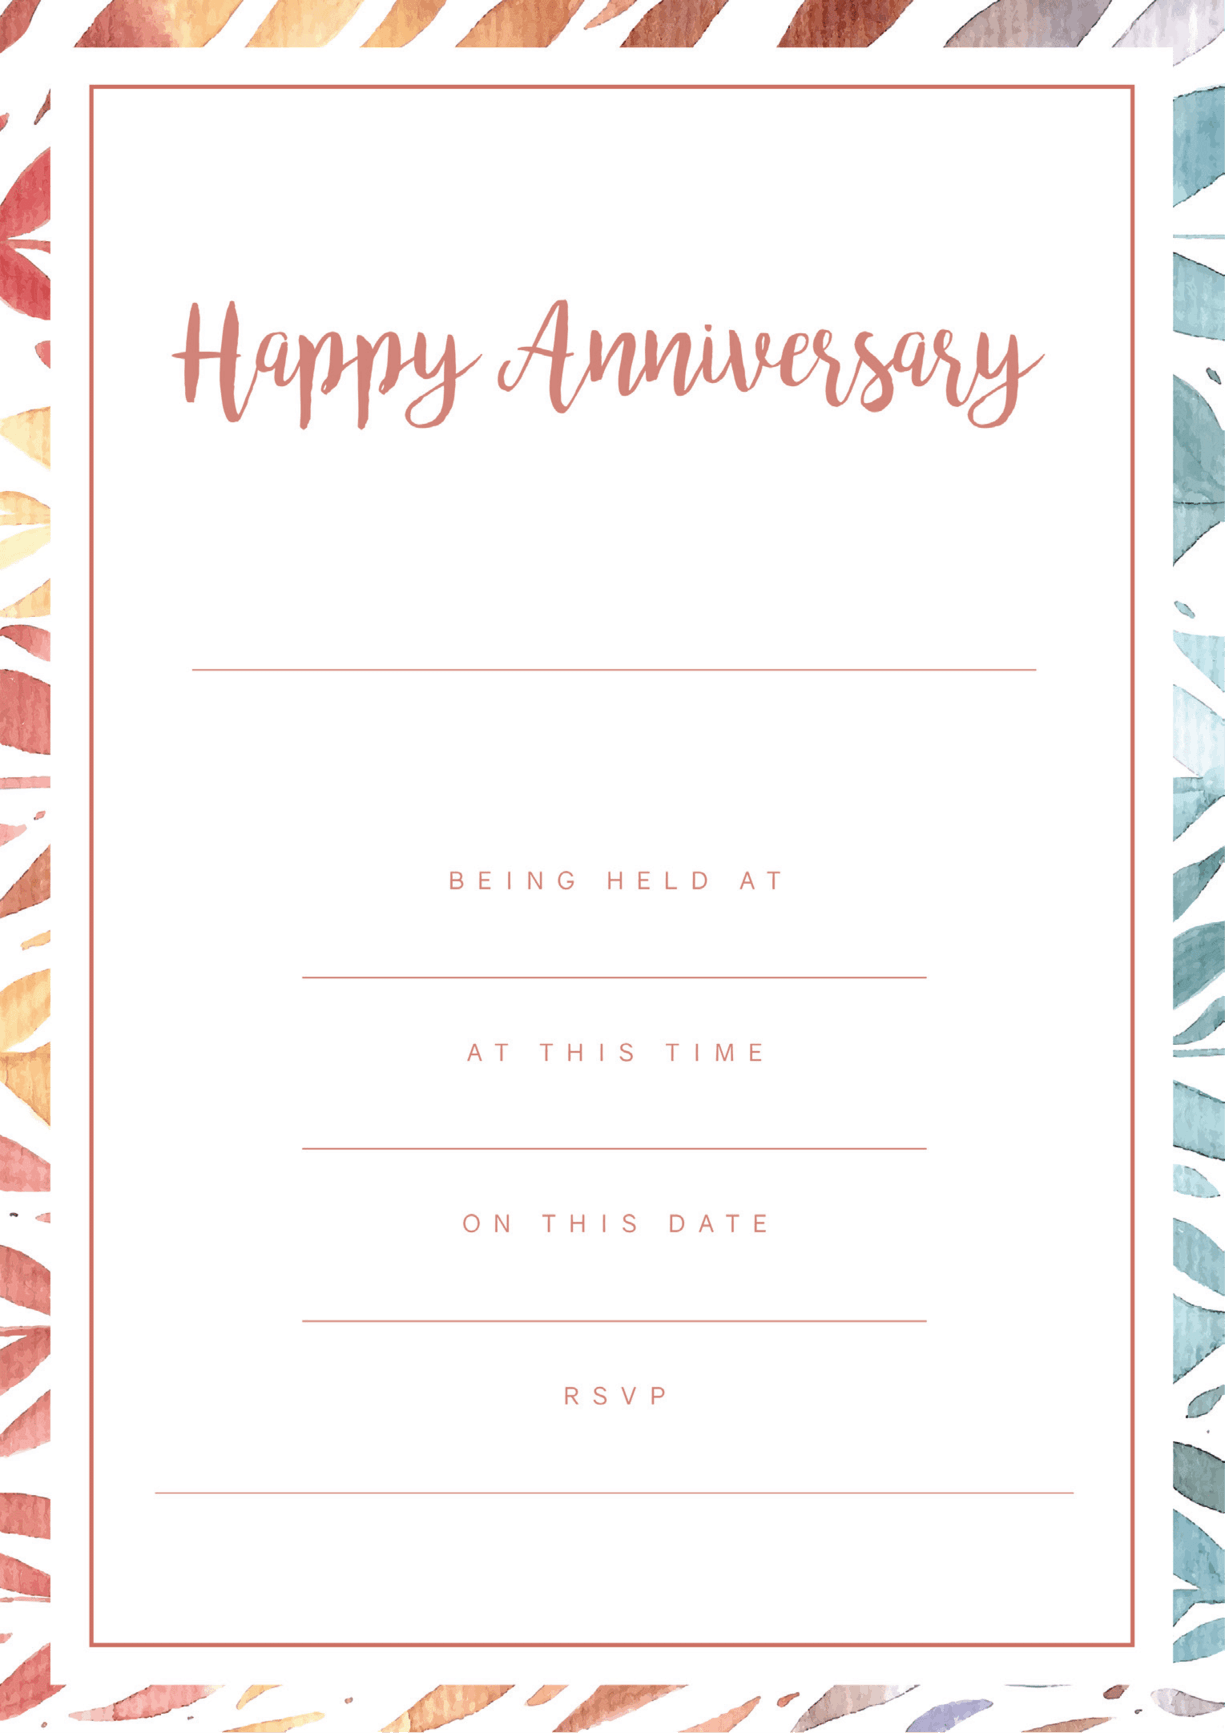 modern happy anniversary party invitation red and blue border design